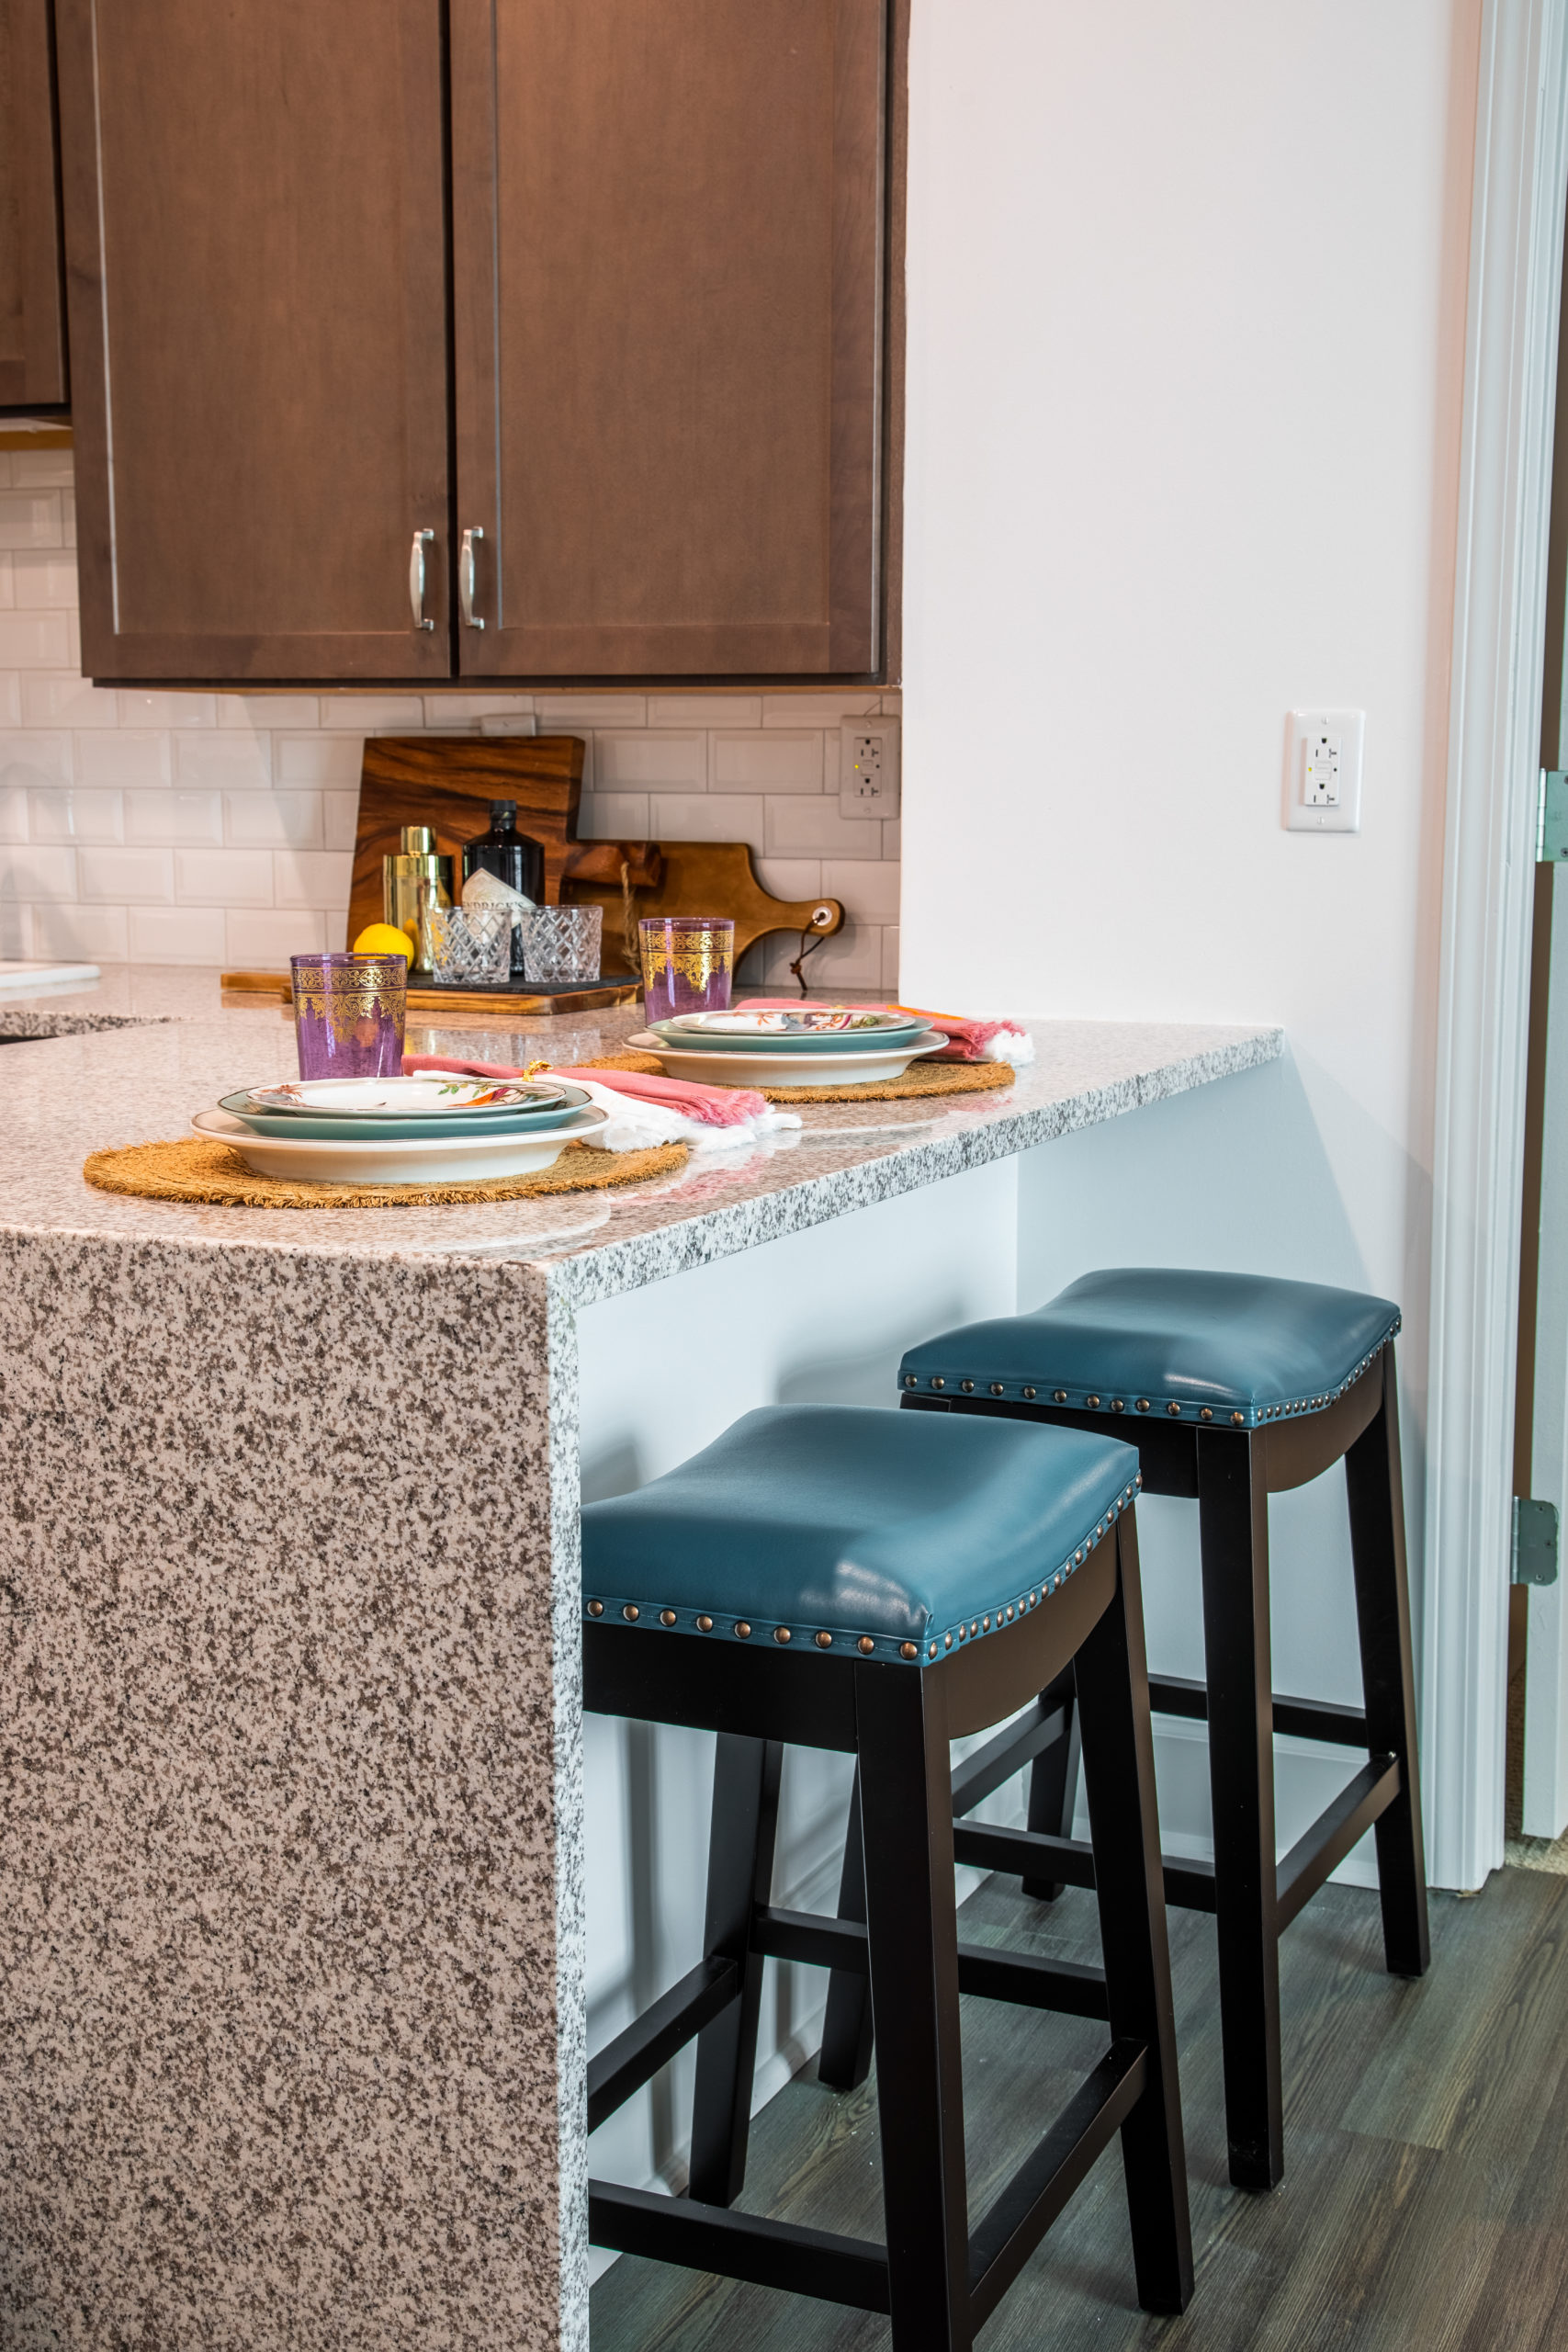 Two teal and brown stools at breakfast bar with waterfall granite countertops in kitchen with white wall, white backsplash and brown cabinets in Longleaf assisted living model apartment